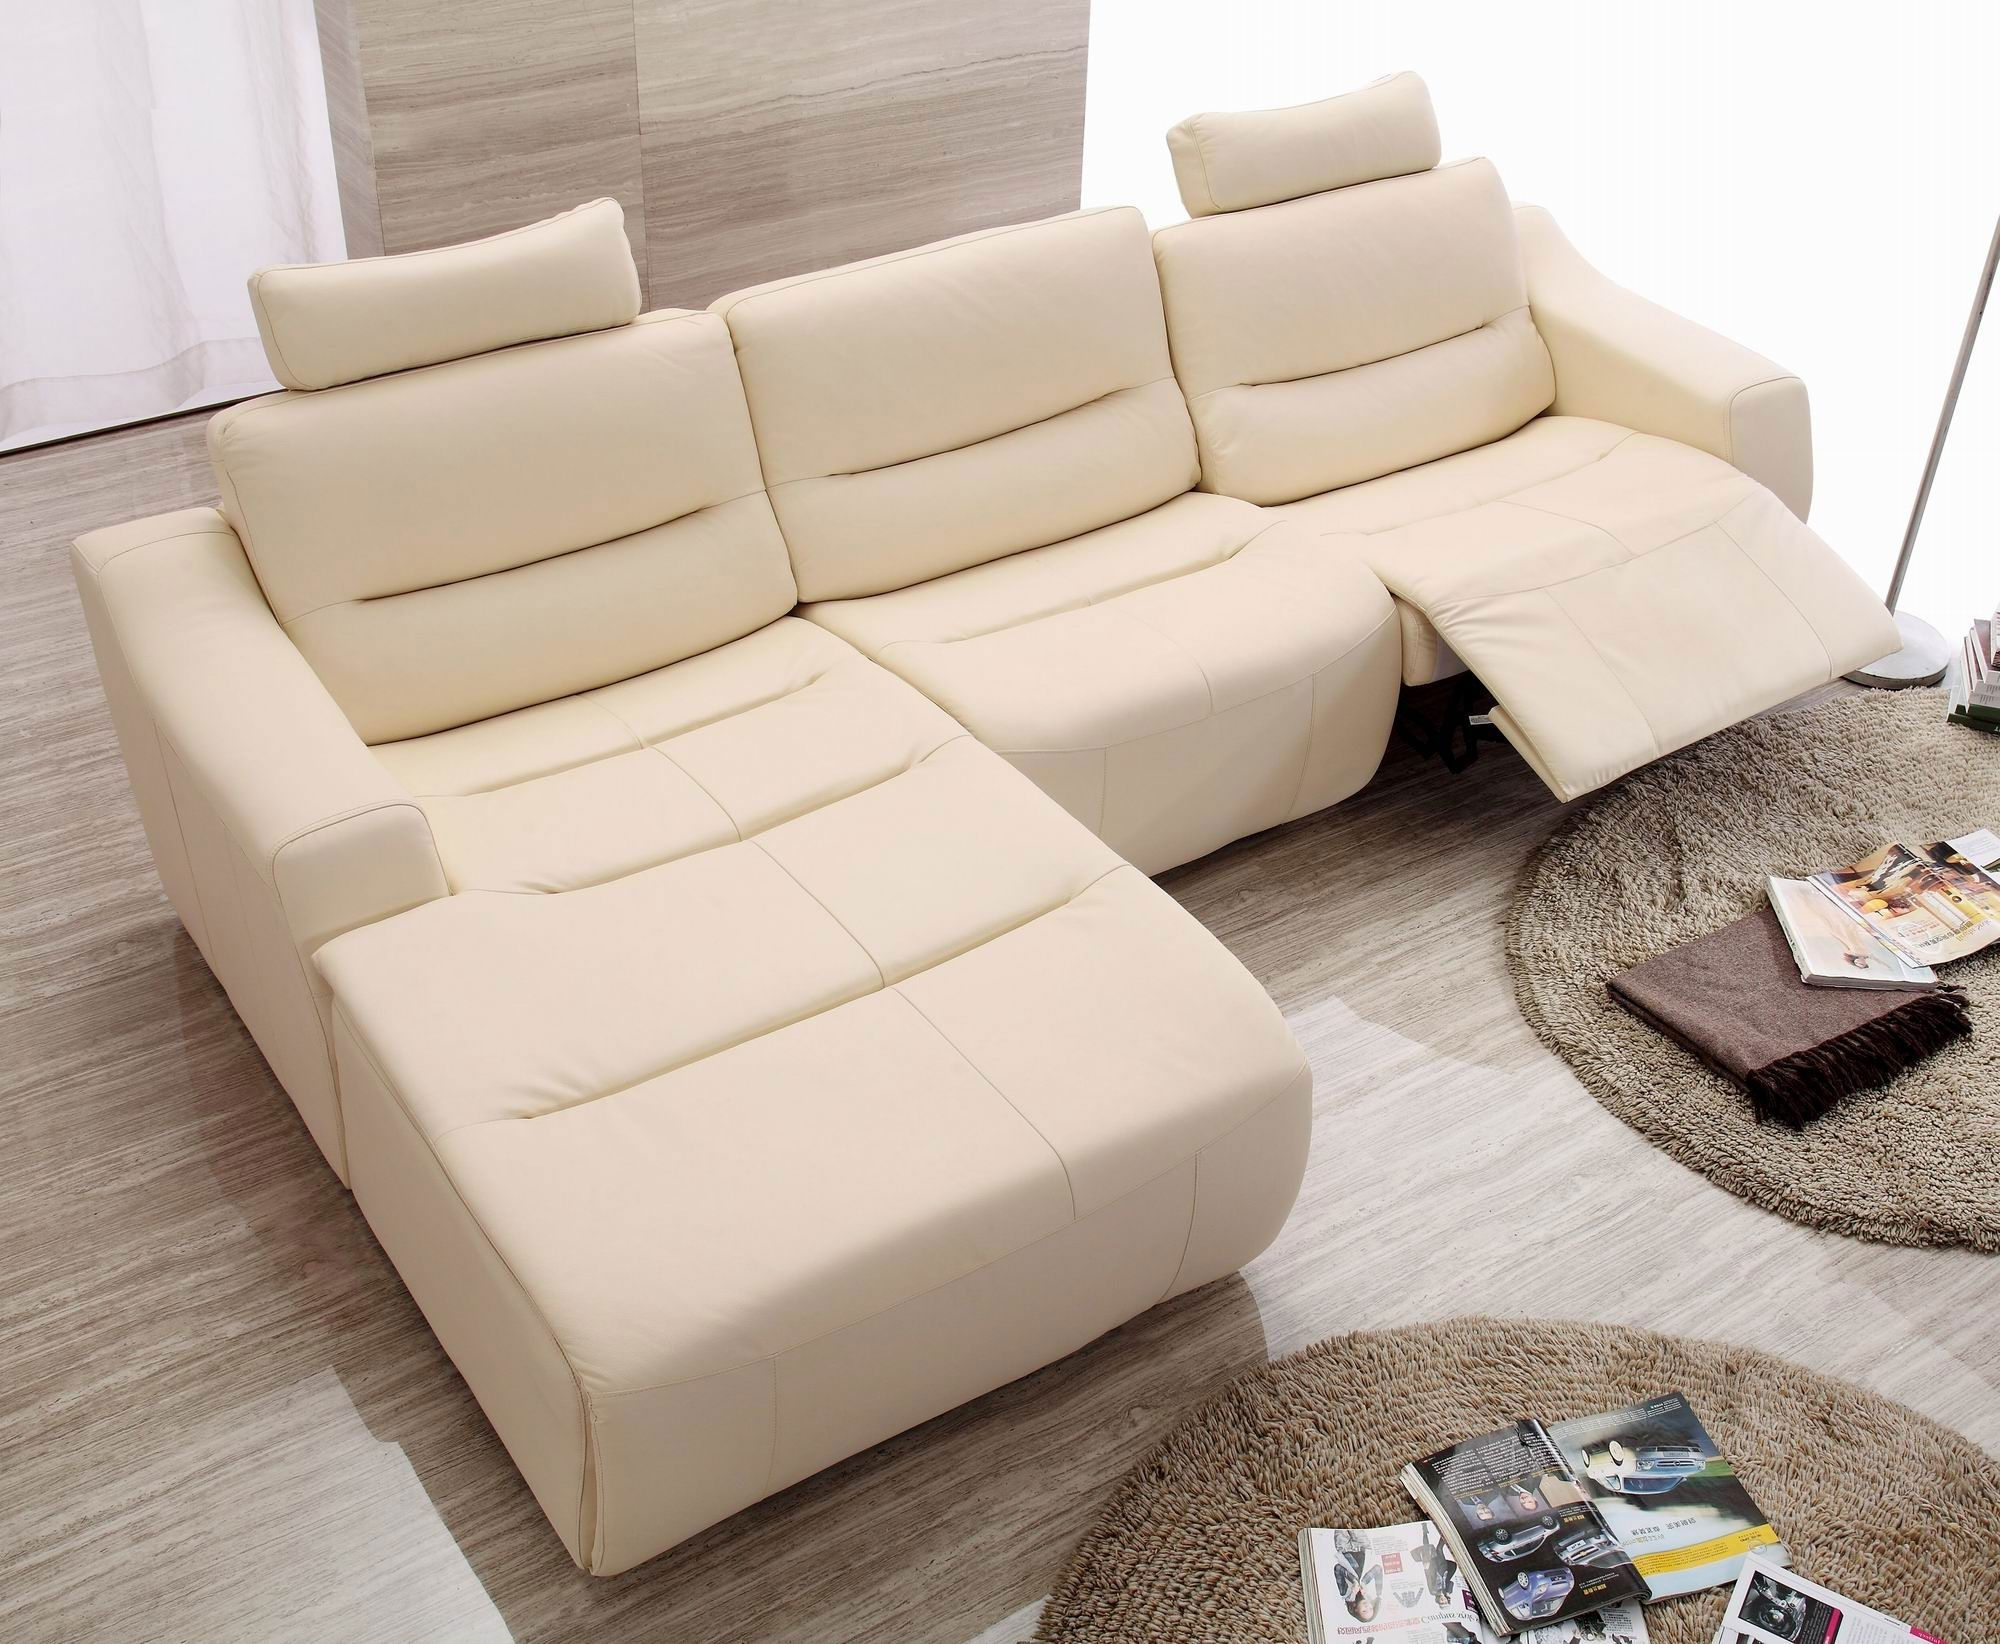 2018 White Or Beige Modern Contemporary Sofa With Chaise – Google In Sectional Sofas For Small Spaces With Recliners (View 6 of 15)